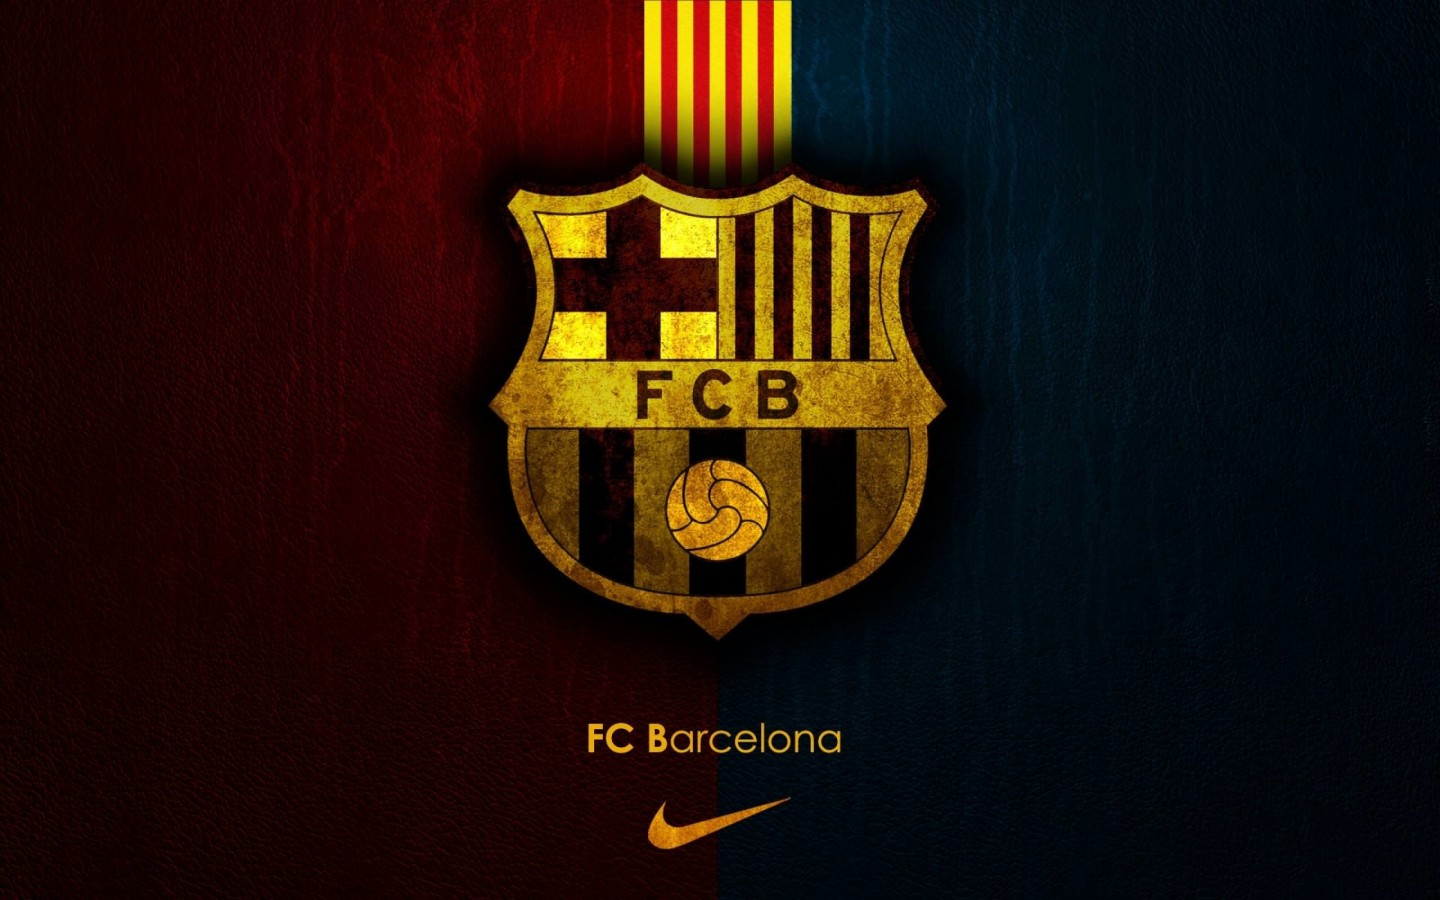 FC Barcelona Wallpaper for Desktop 1440x900